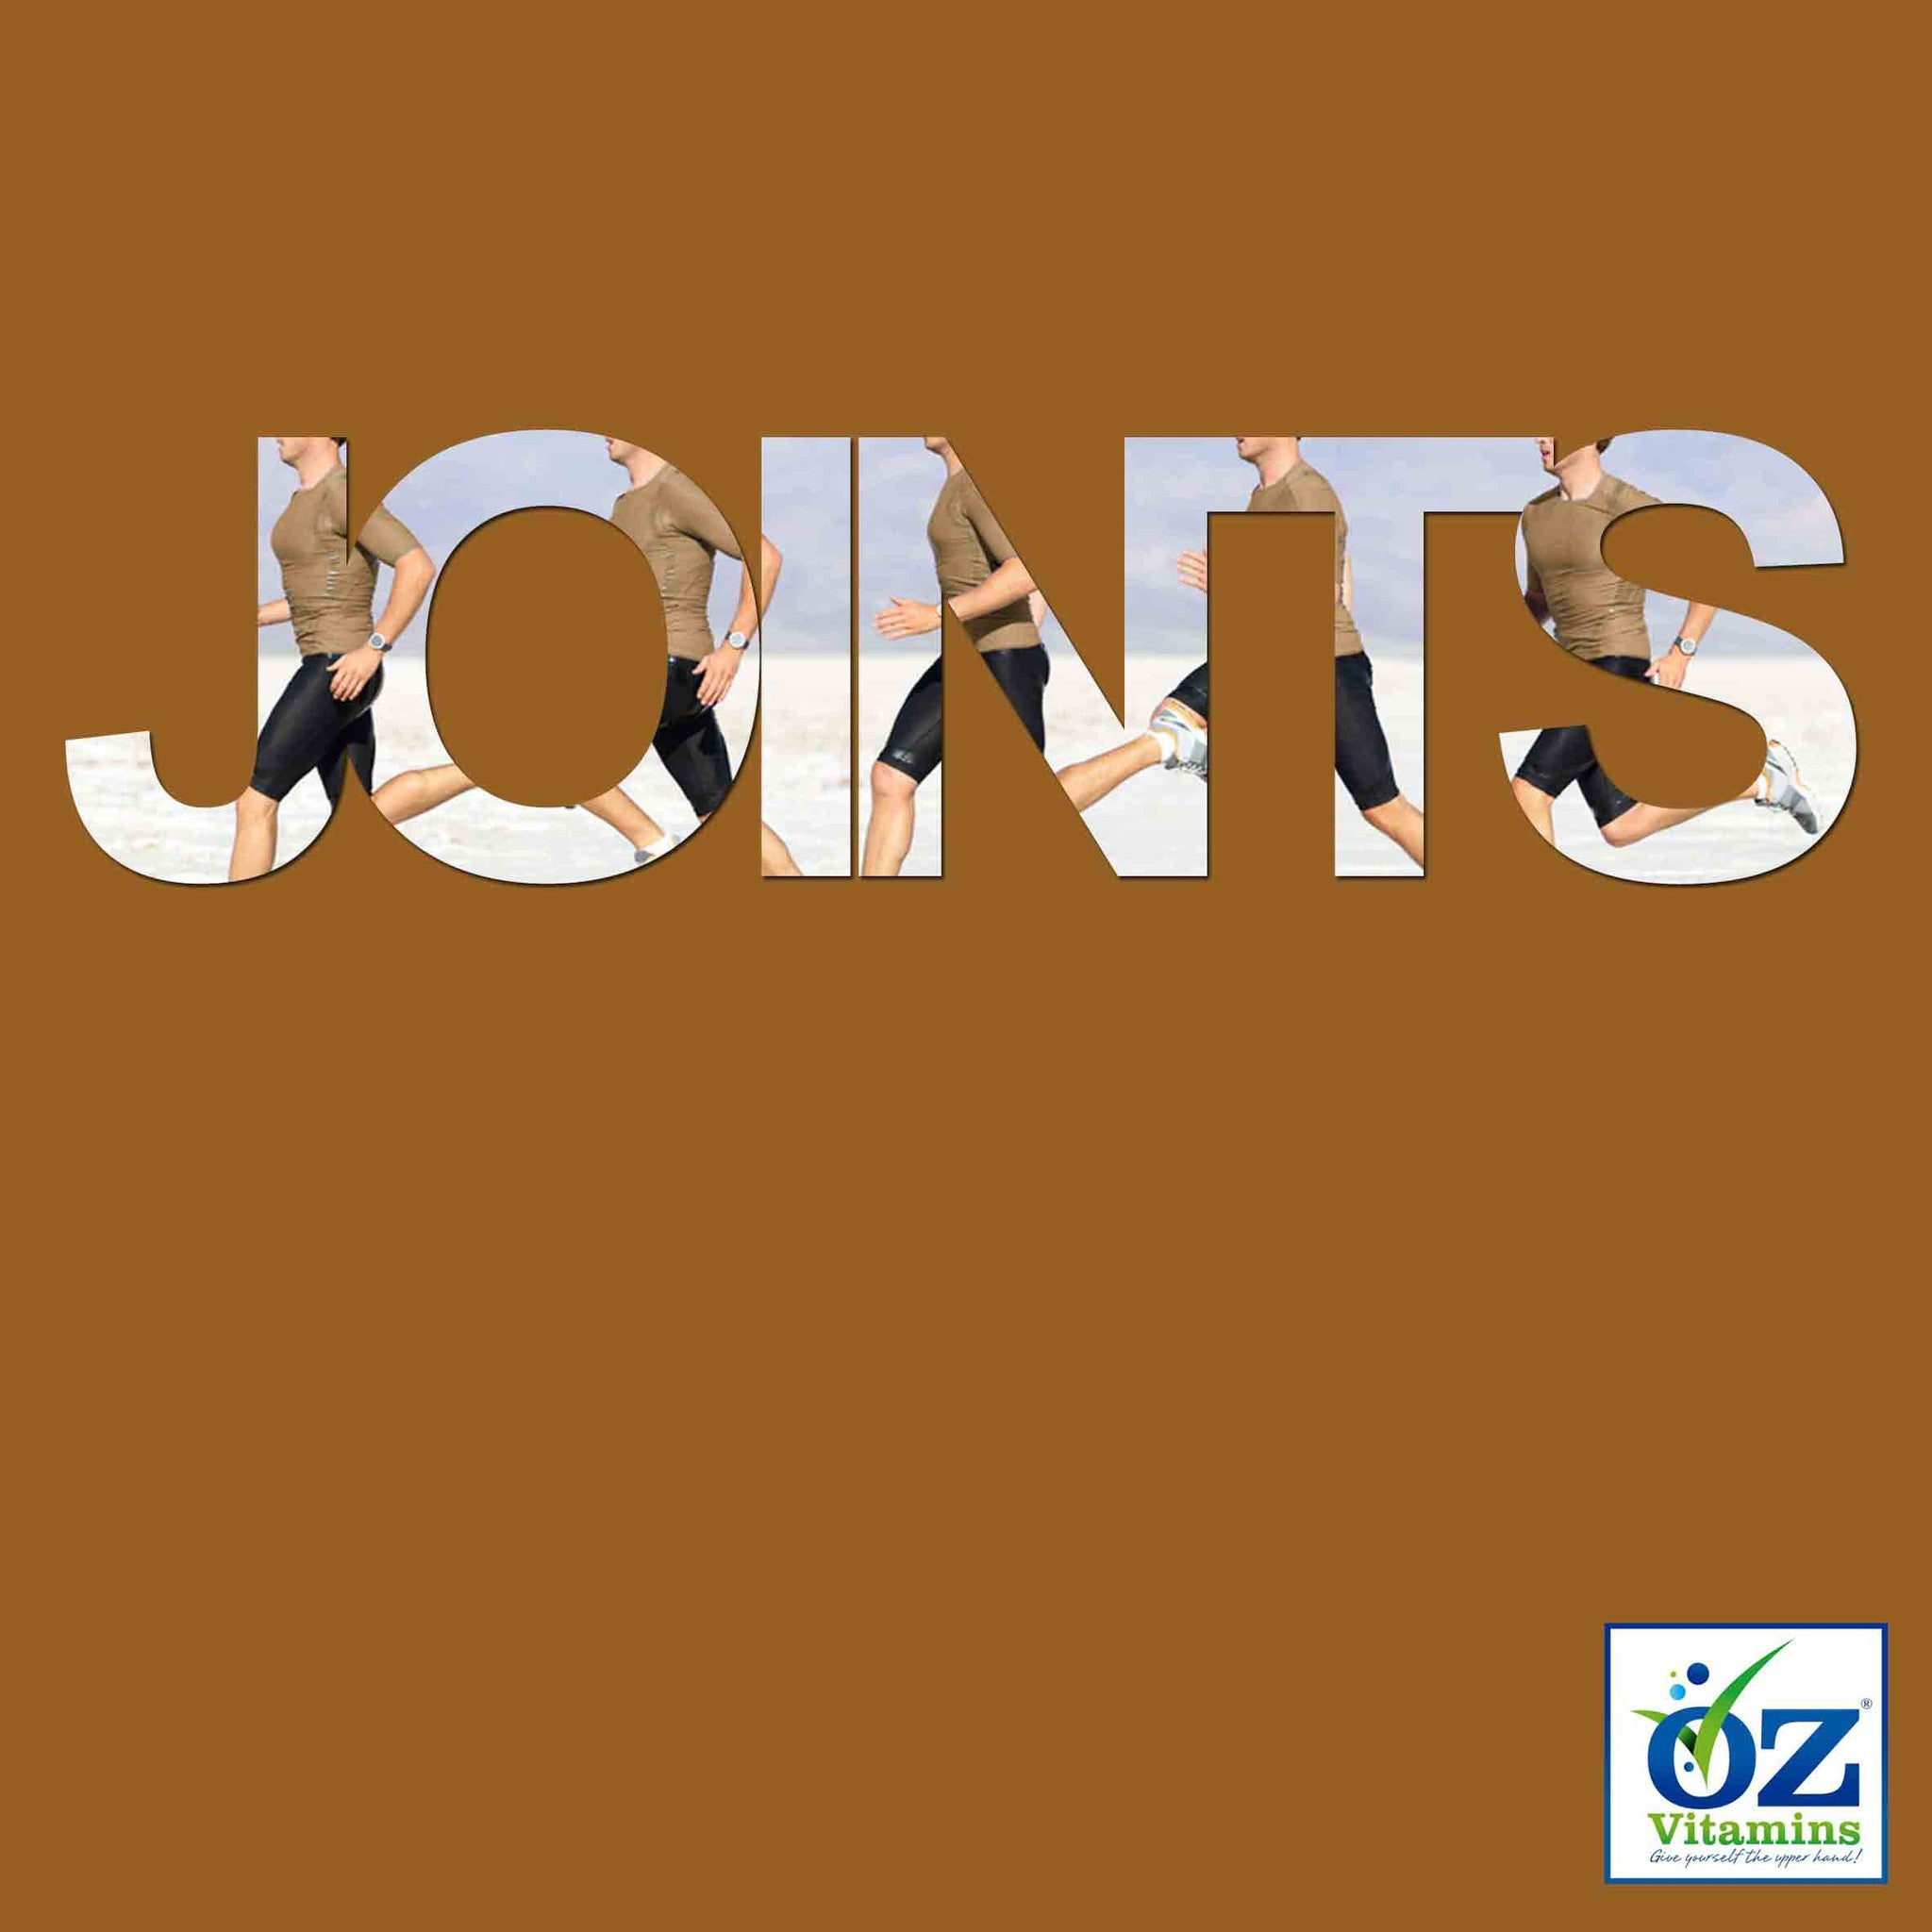 Oz Vitamins Better Joints is a unique vitamin dietary supplement designed to support healthy joints, enabling mobility and functionality in a healthy, active lifestyle. It is available exclusively online and packs a whopping Boswellia Serrata (65% Boswellic acid) 1000mg, Chondroitin 1200mg, Collagen Type 2 2000mg, Curcuma Longa (95% Curcuminoids) 1500mg, Glucosamine 1500mg, Hyaluronic acid 200mg and MSM 1000mg into a total daily dose in a convenient one month supply.